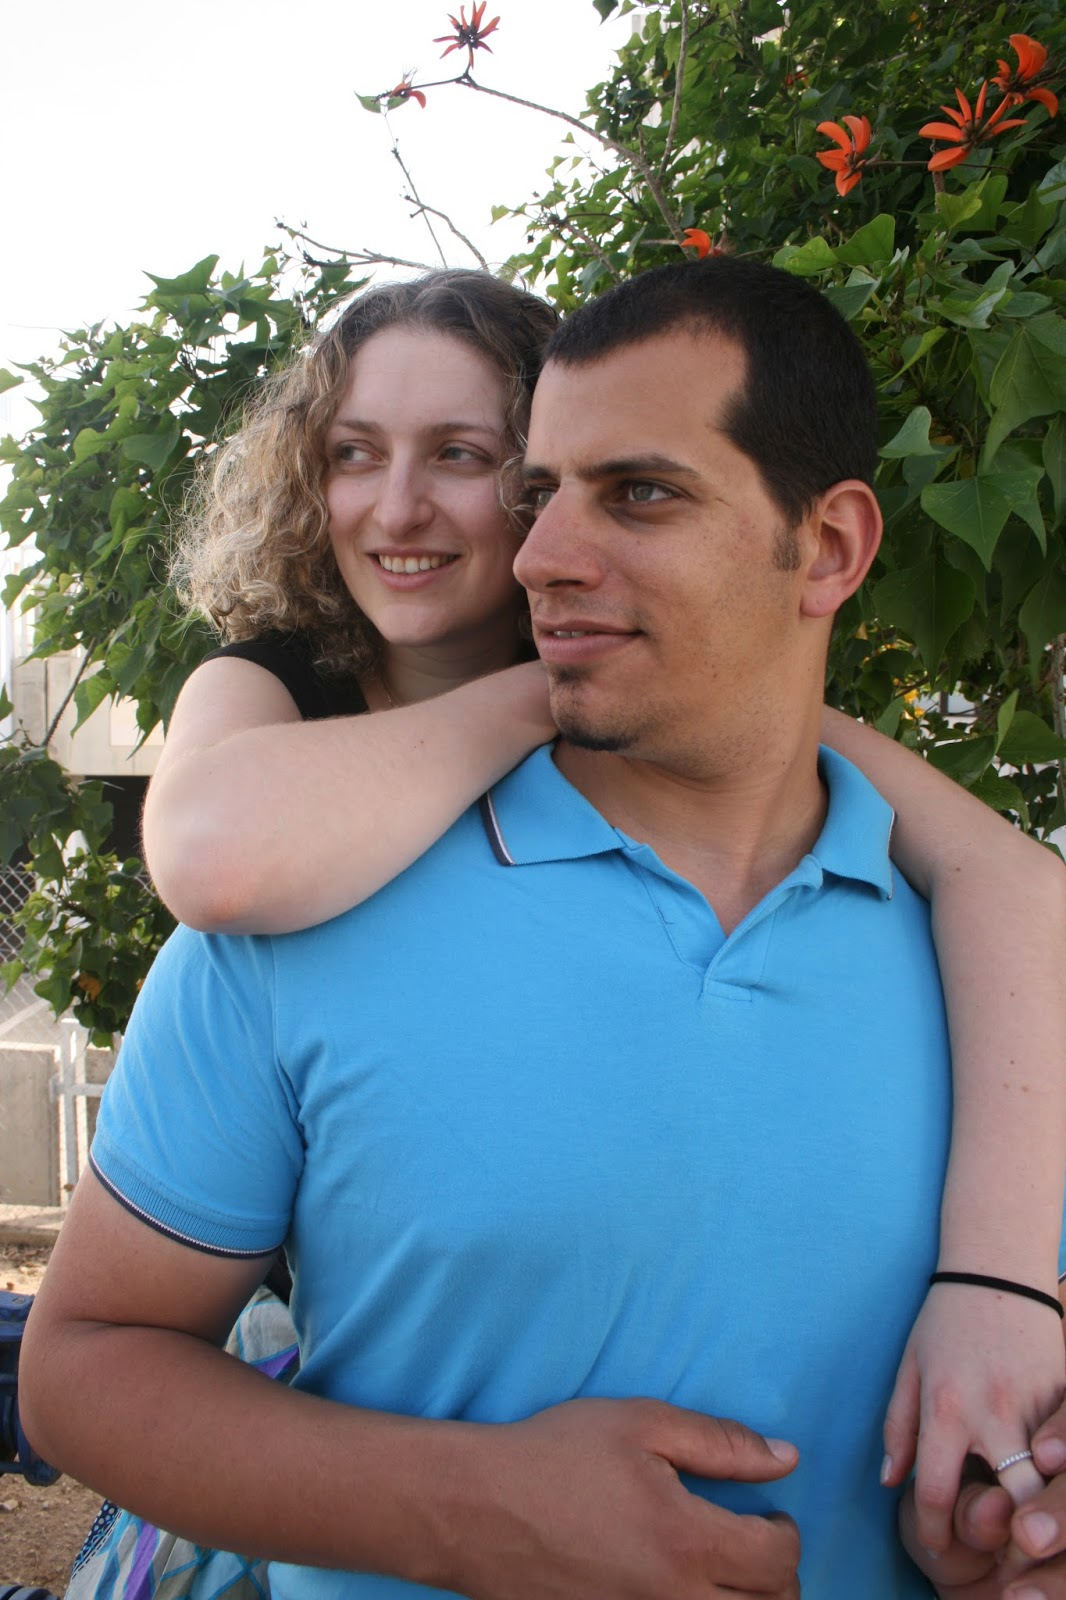 Successful Online Dating Couples Share their Experiences